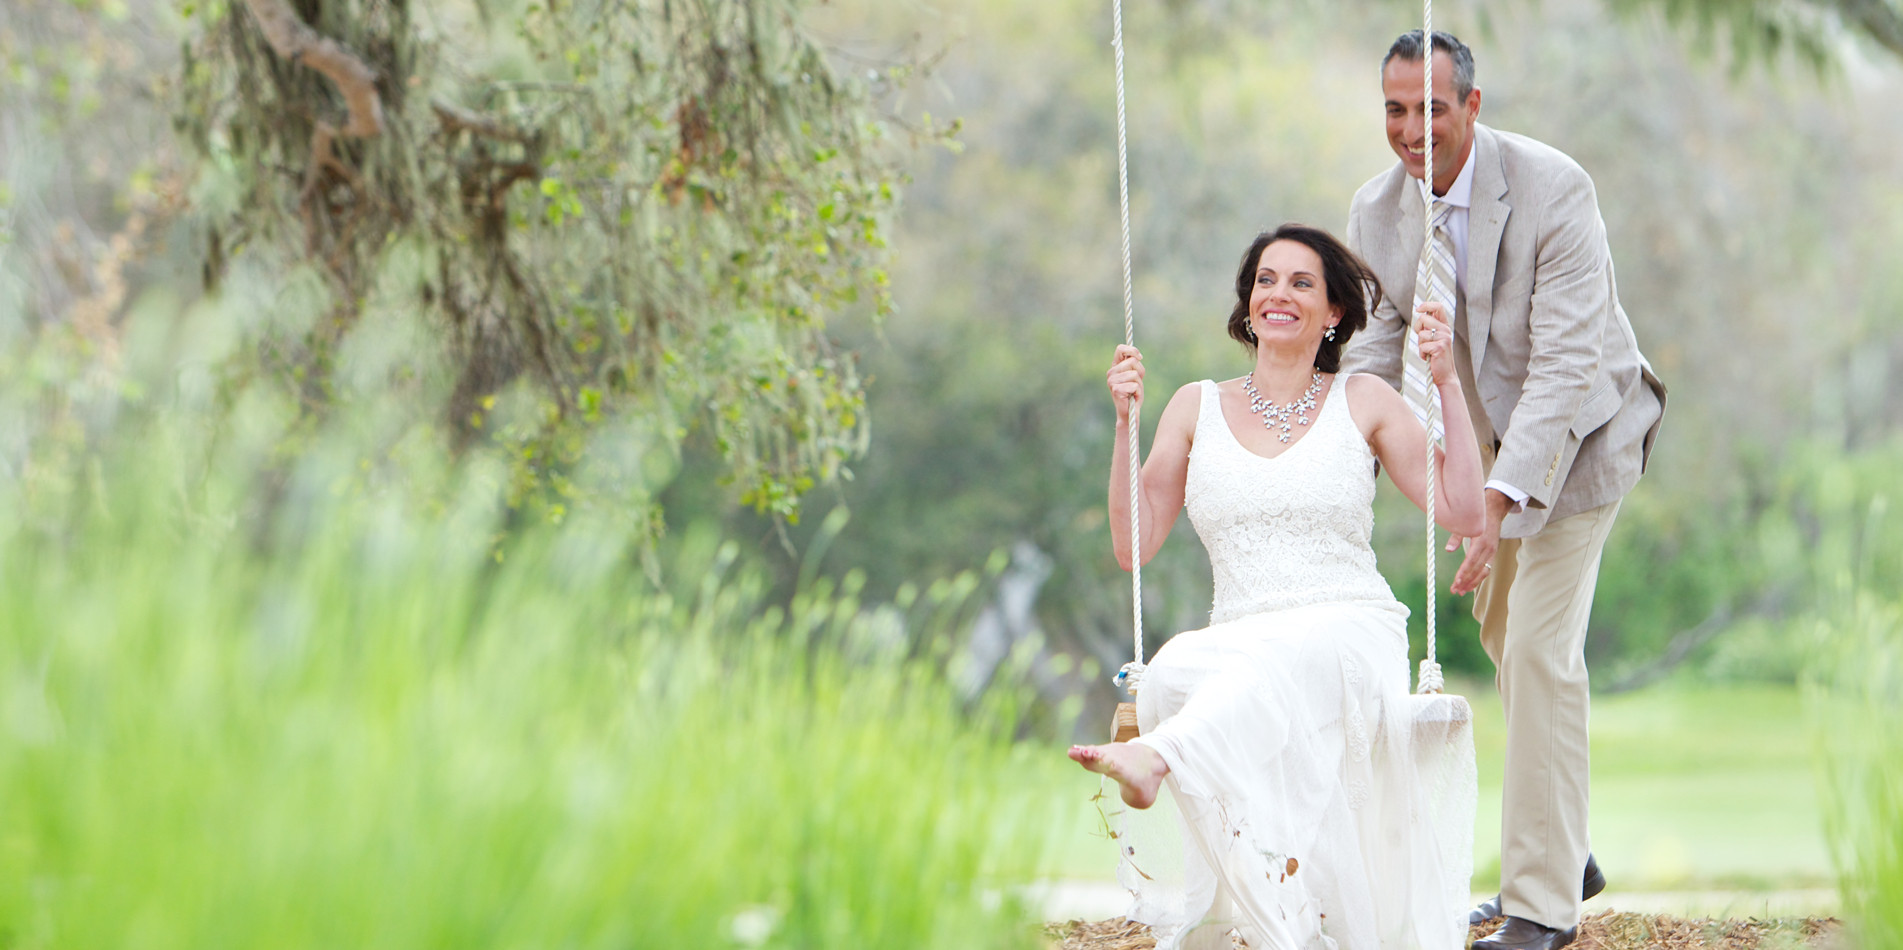 Carmel Valley Ranch_Weddigns_Swing_bride and groom fun swinging